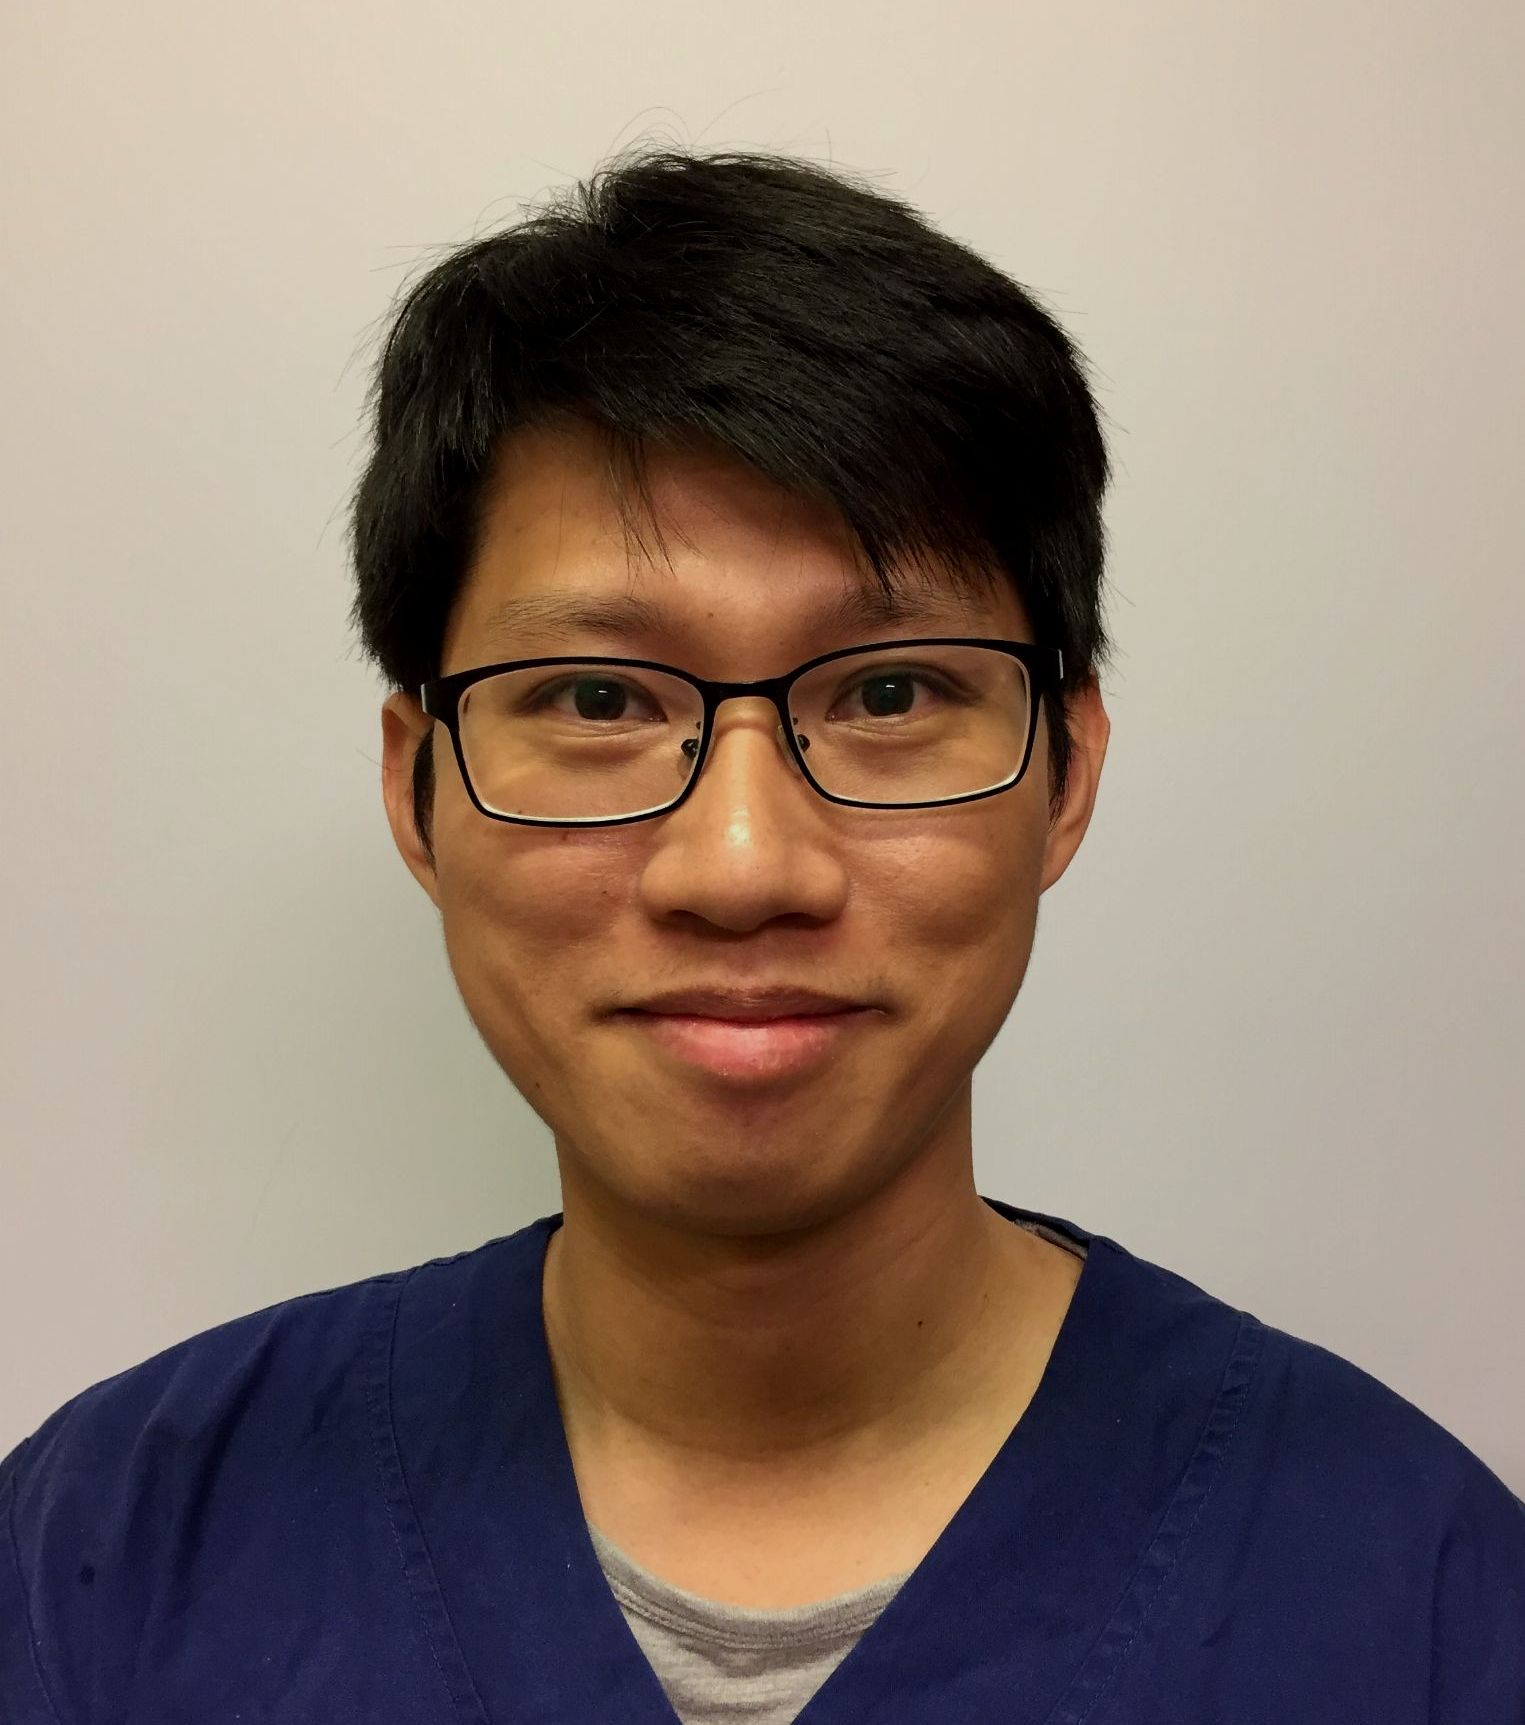 Dr Colin Chng